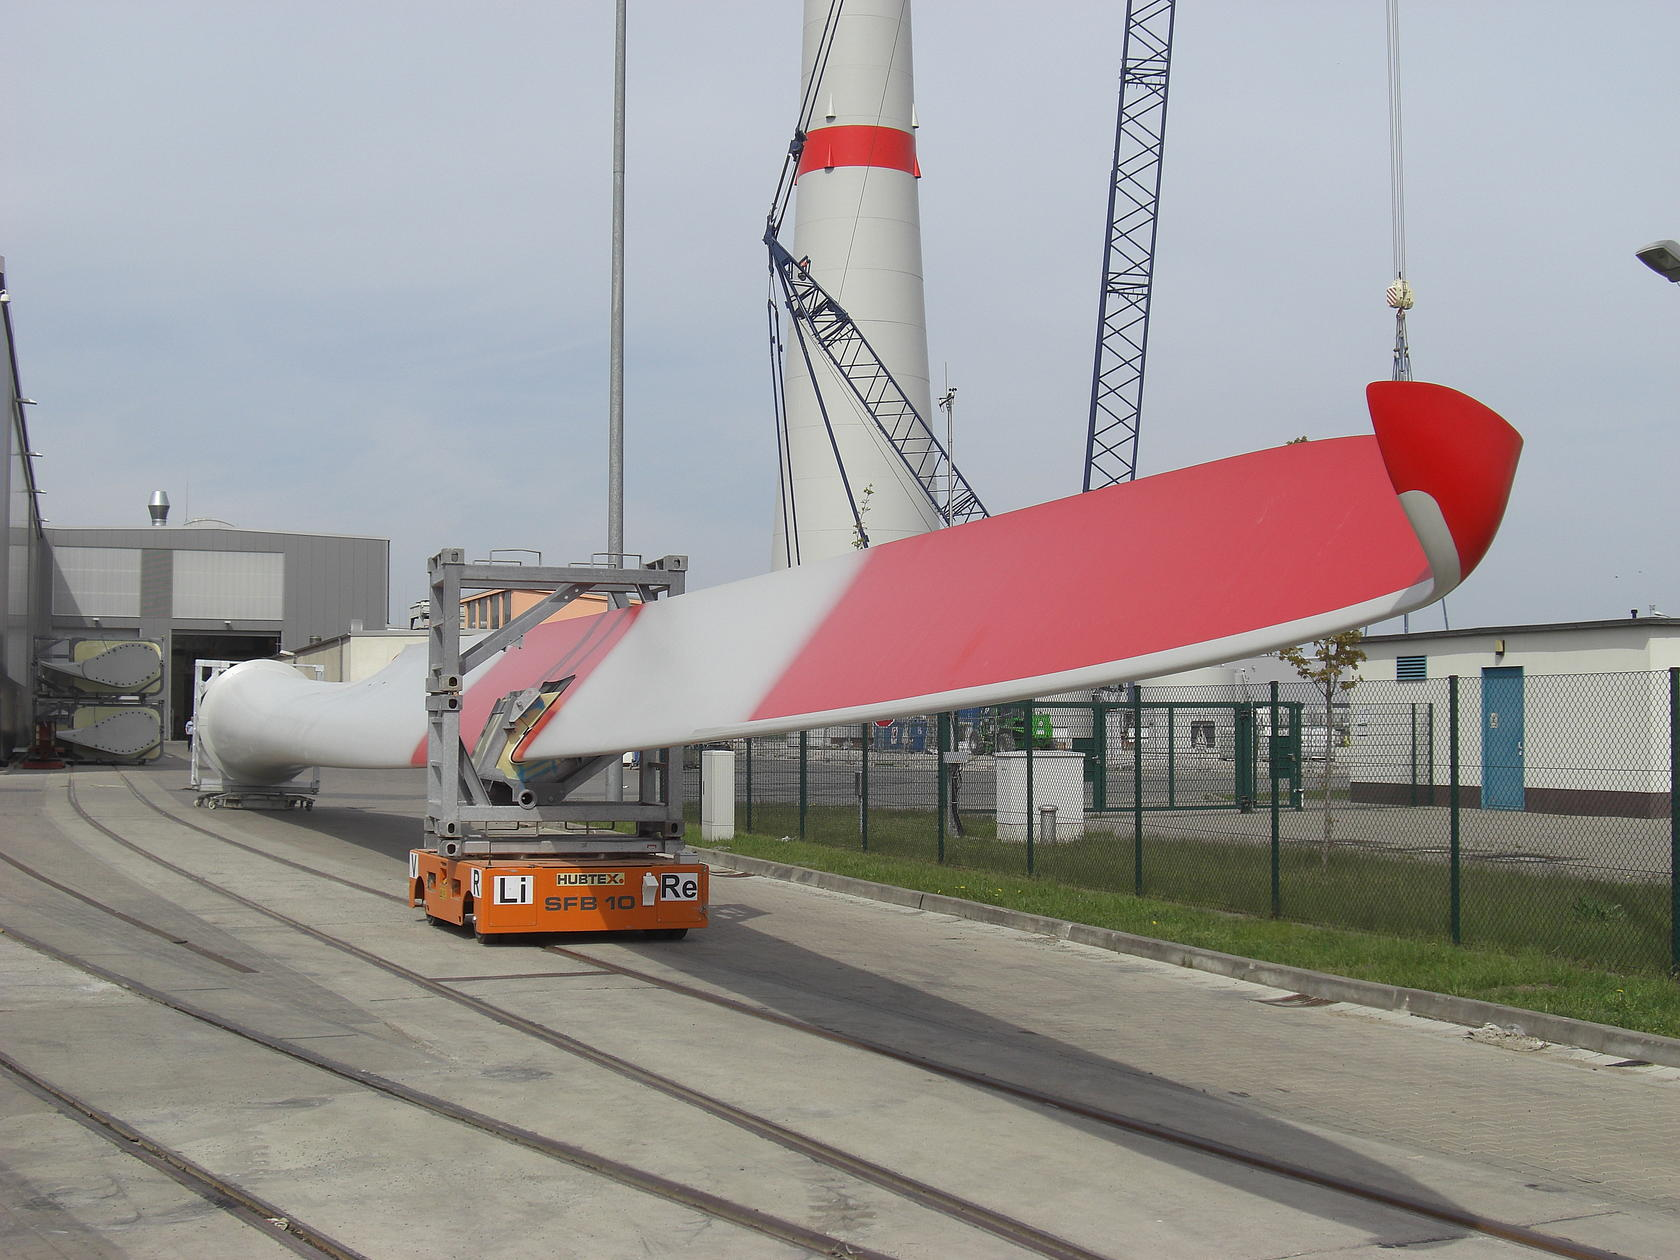 Transporting rotor blades with a HUBTEX platform transporter